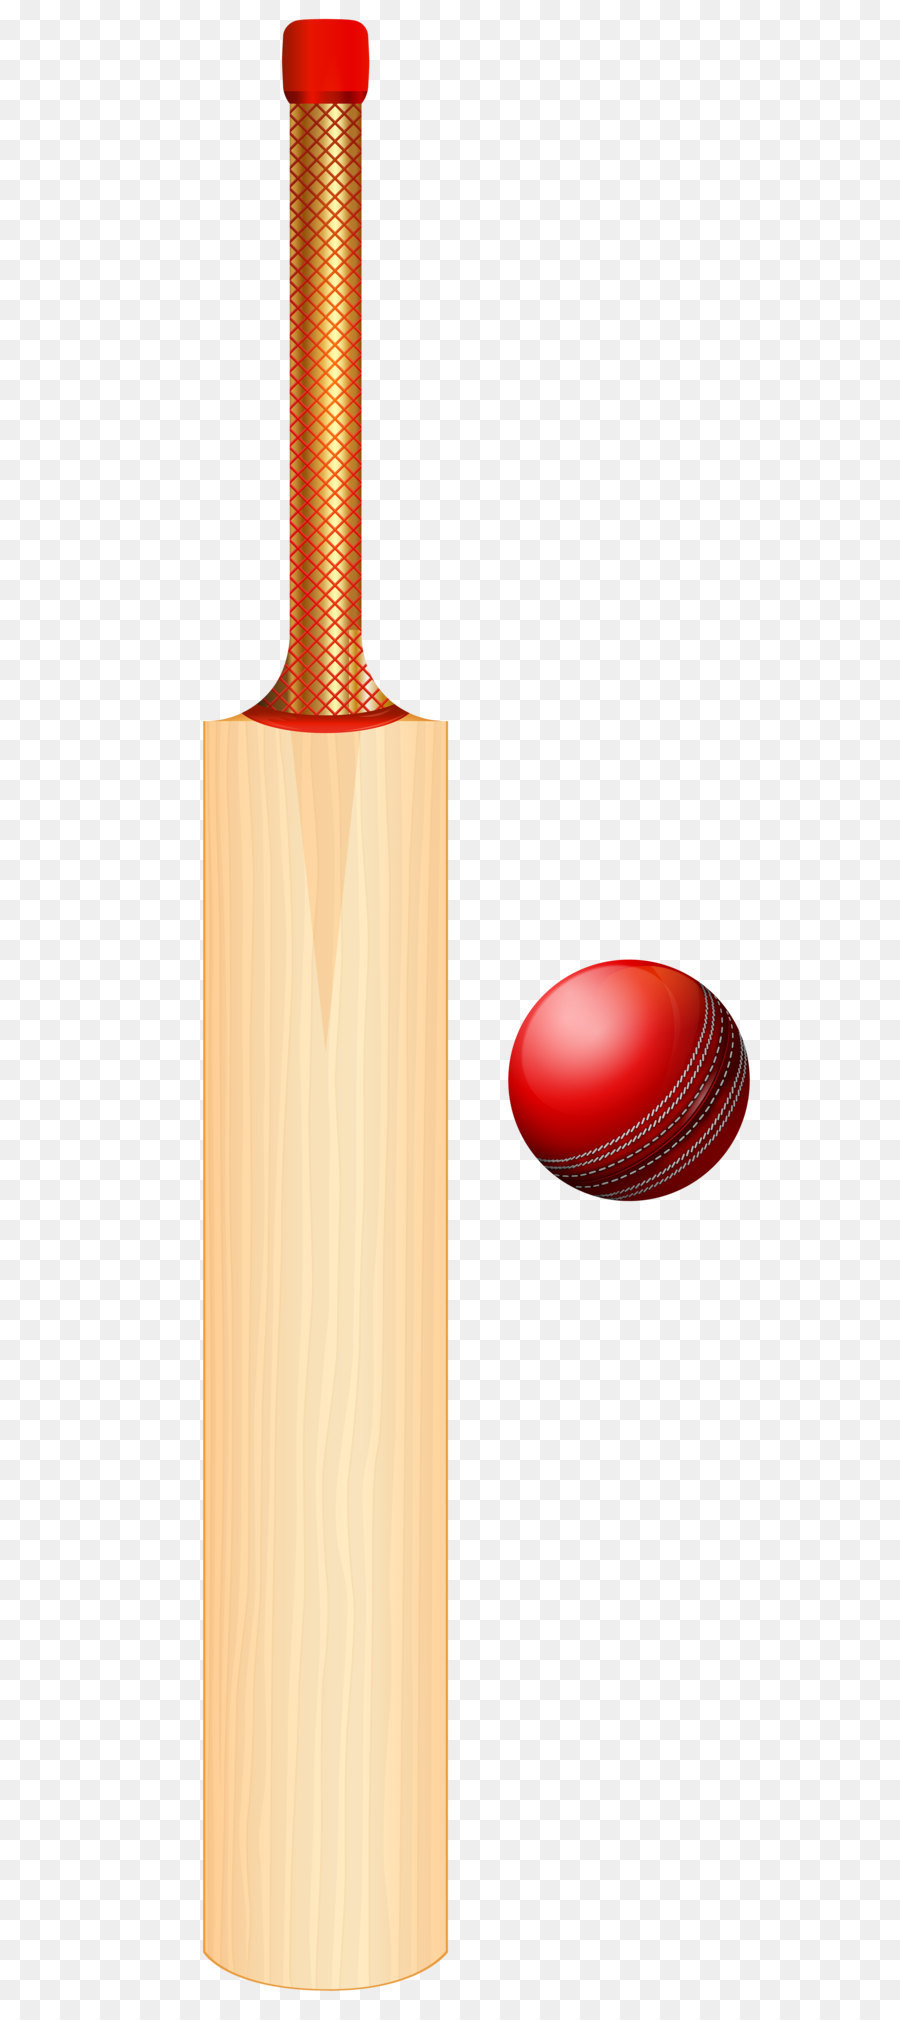 Cricket bat Batting Clip art - Cricket Set PNG Transparent Clip Art Image - Ball And Bat PNG